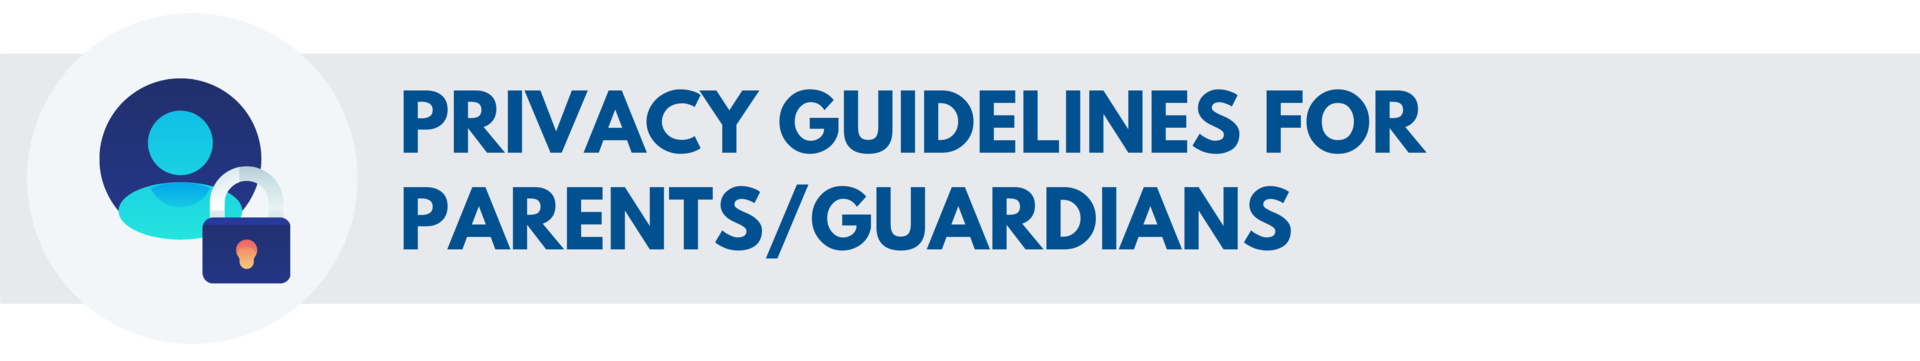 Privacy Guidelines for Parents/Guardians